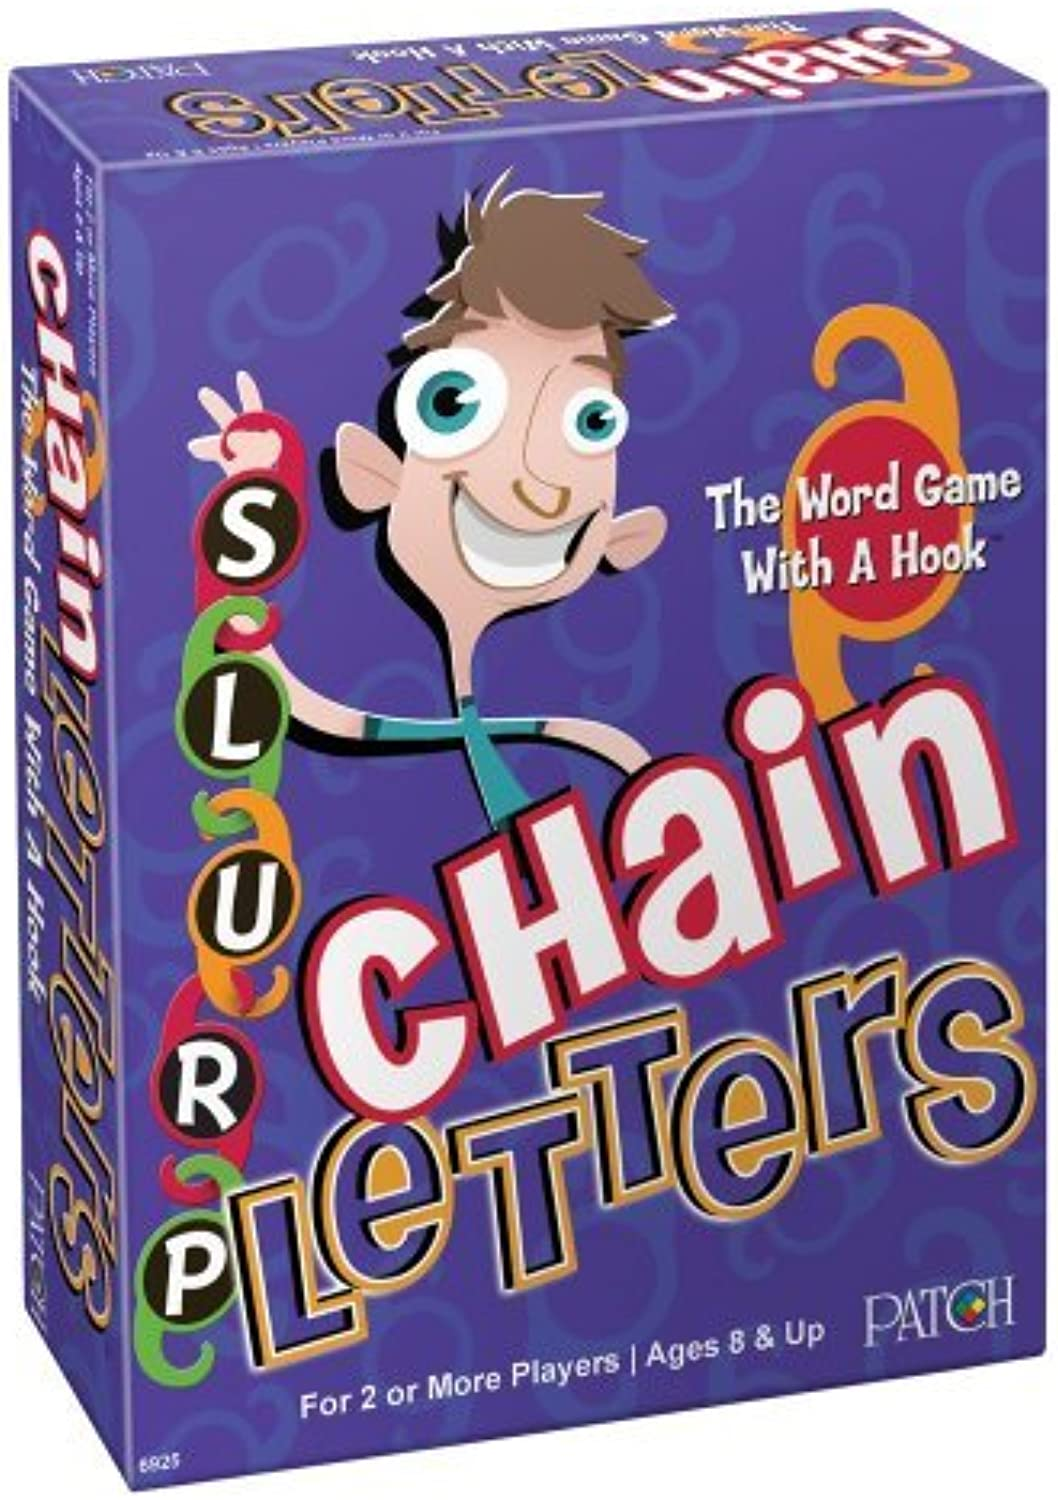 Chain Letters Word Board Game by Patch Products Inc.